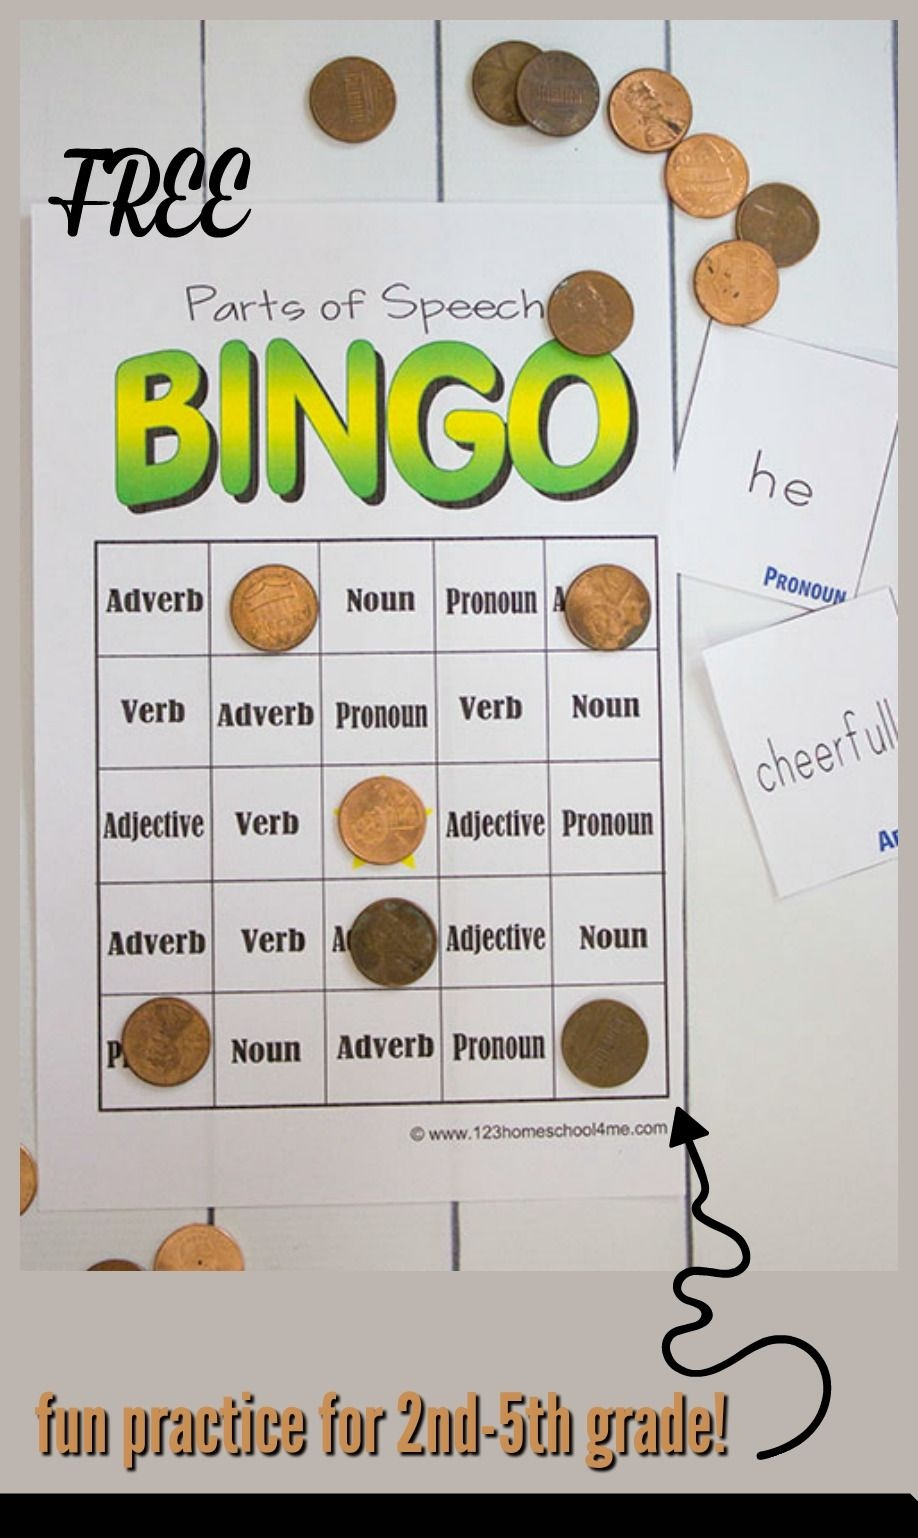 Free Parts Of Speech Game   Education   Parts Of Speech Games, Parts - Free Printable Parts Of Speech Bingo